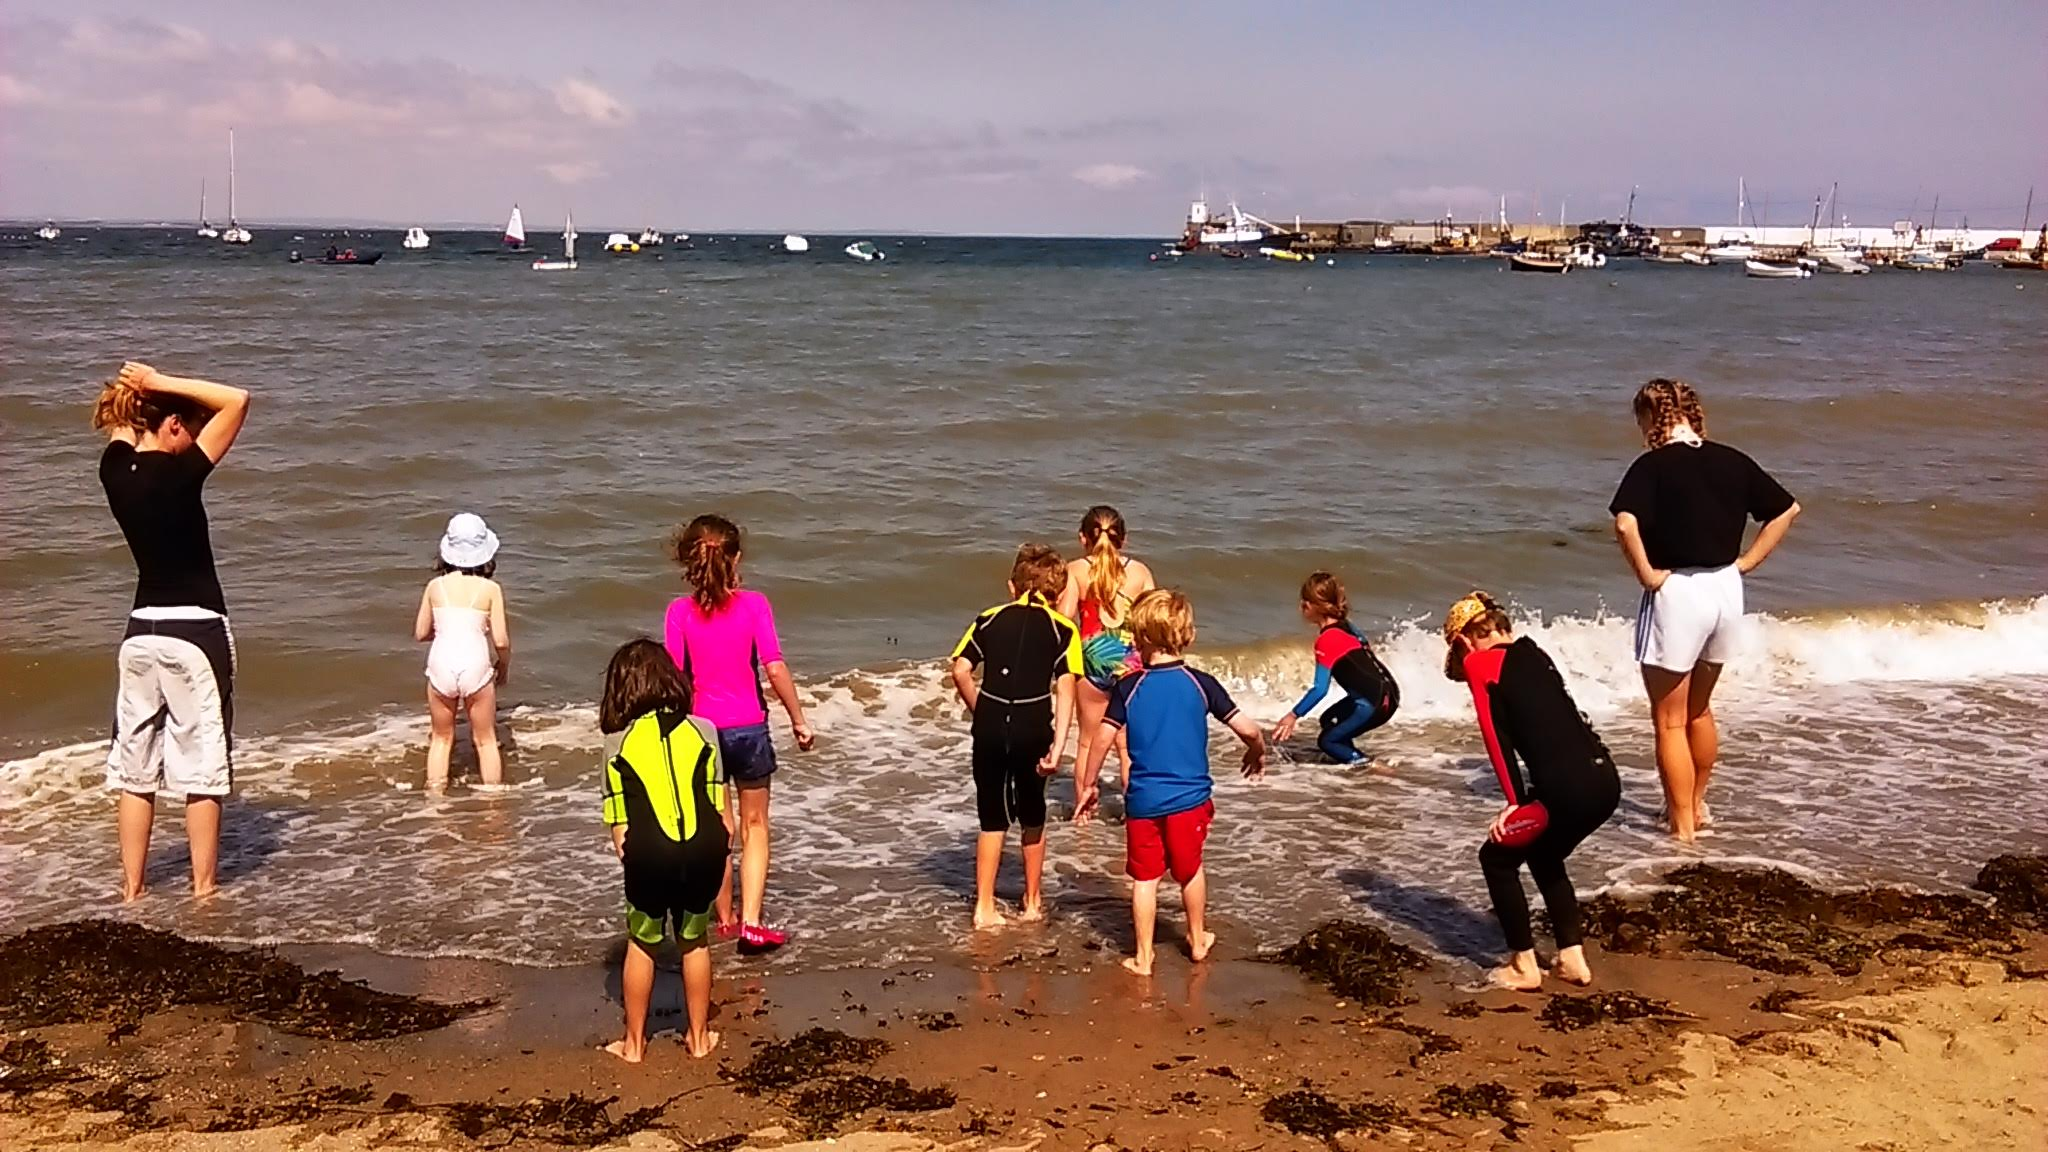 Miriam one of the babysitter in my team had been working in a Summer Camp in Skerries and here she is sharing her wonderful experience! I think everyone had so much fun!